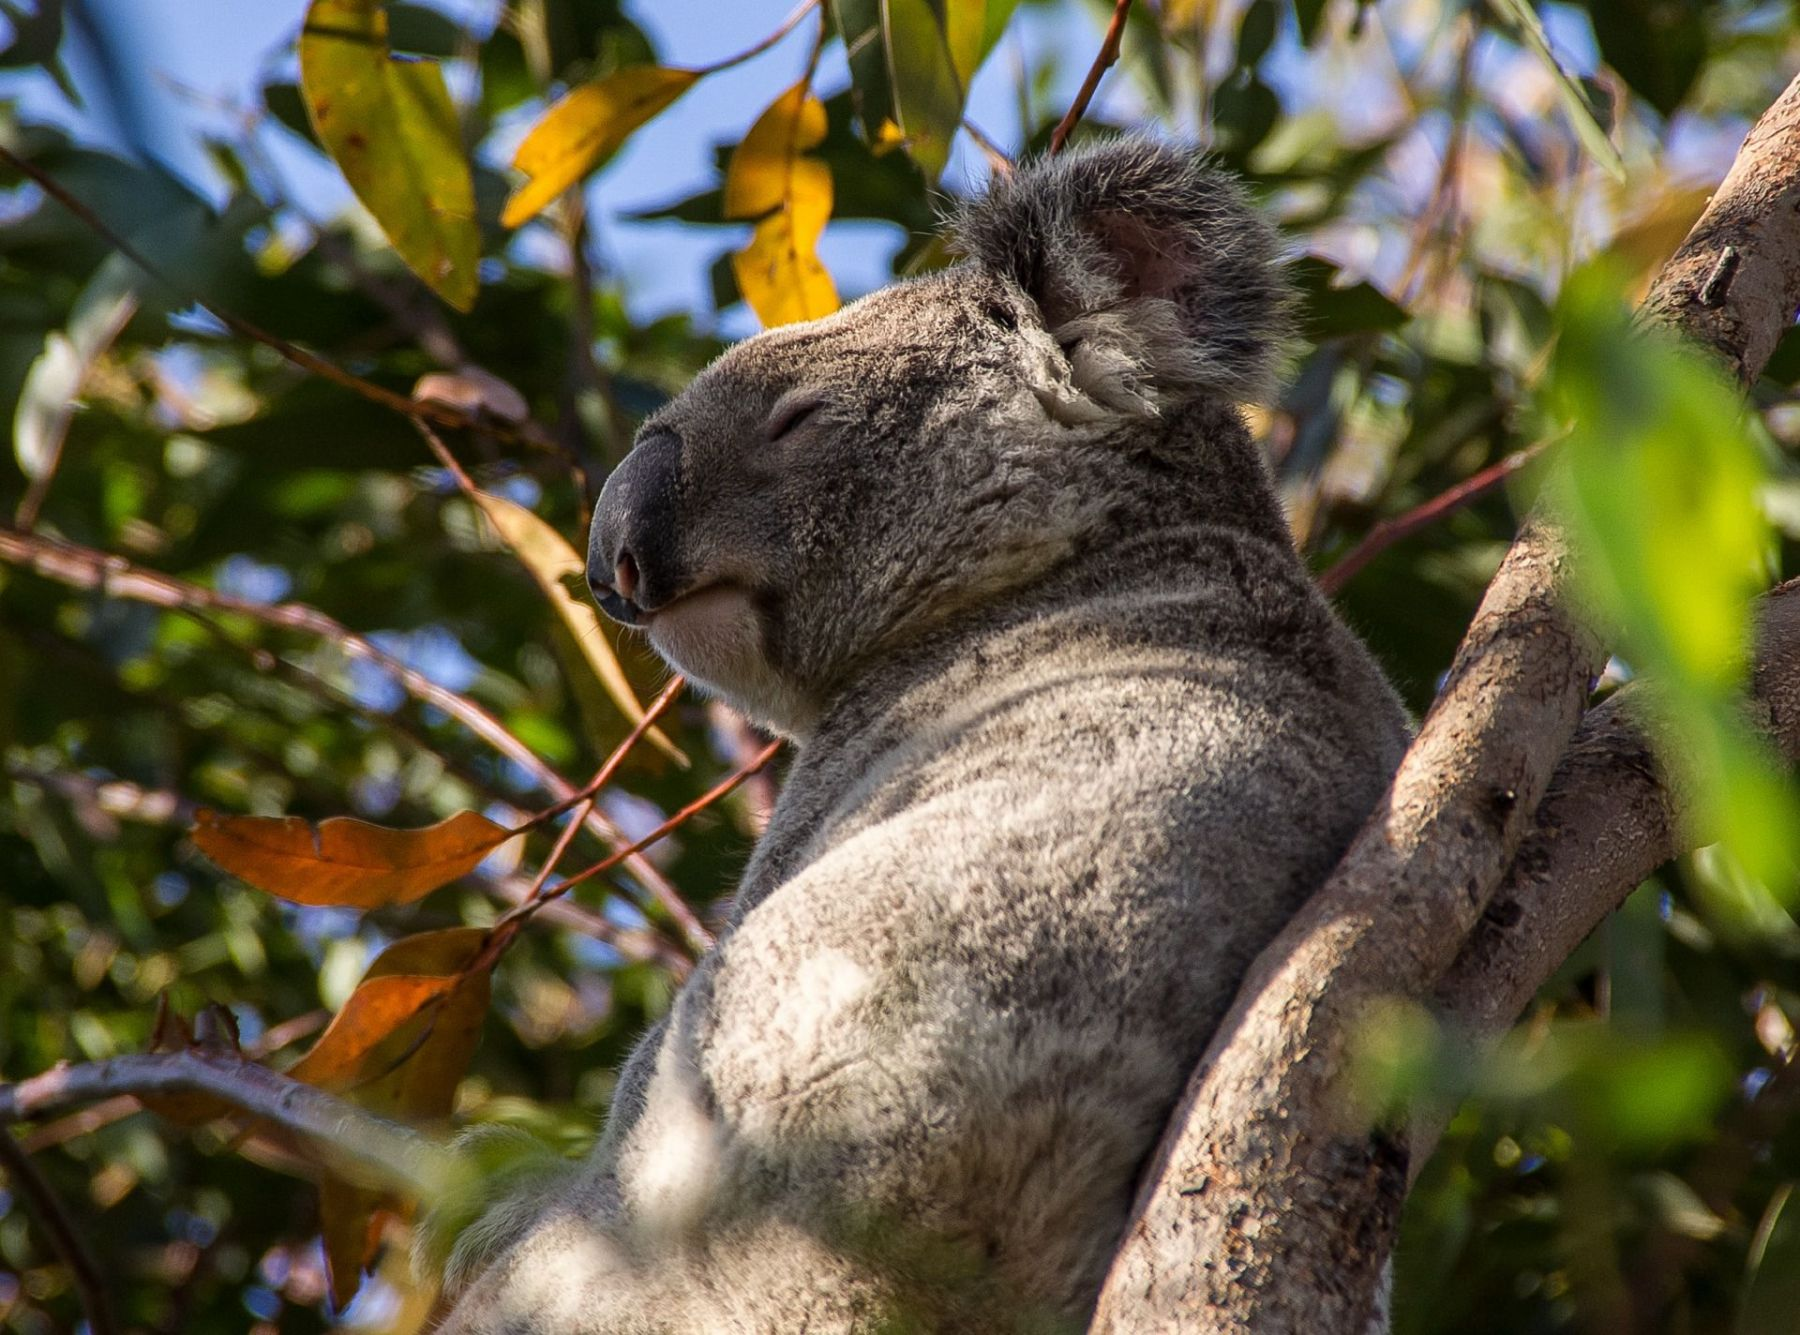 Koalas aren't the most intellectual of animals, but these leaf-loving tree-dwellers may be smarter than we give them credit for. ...